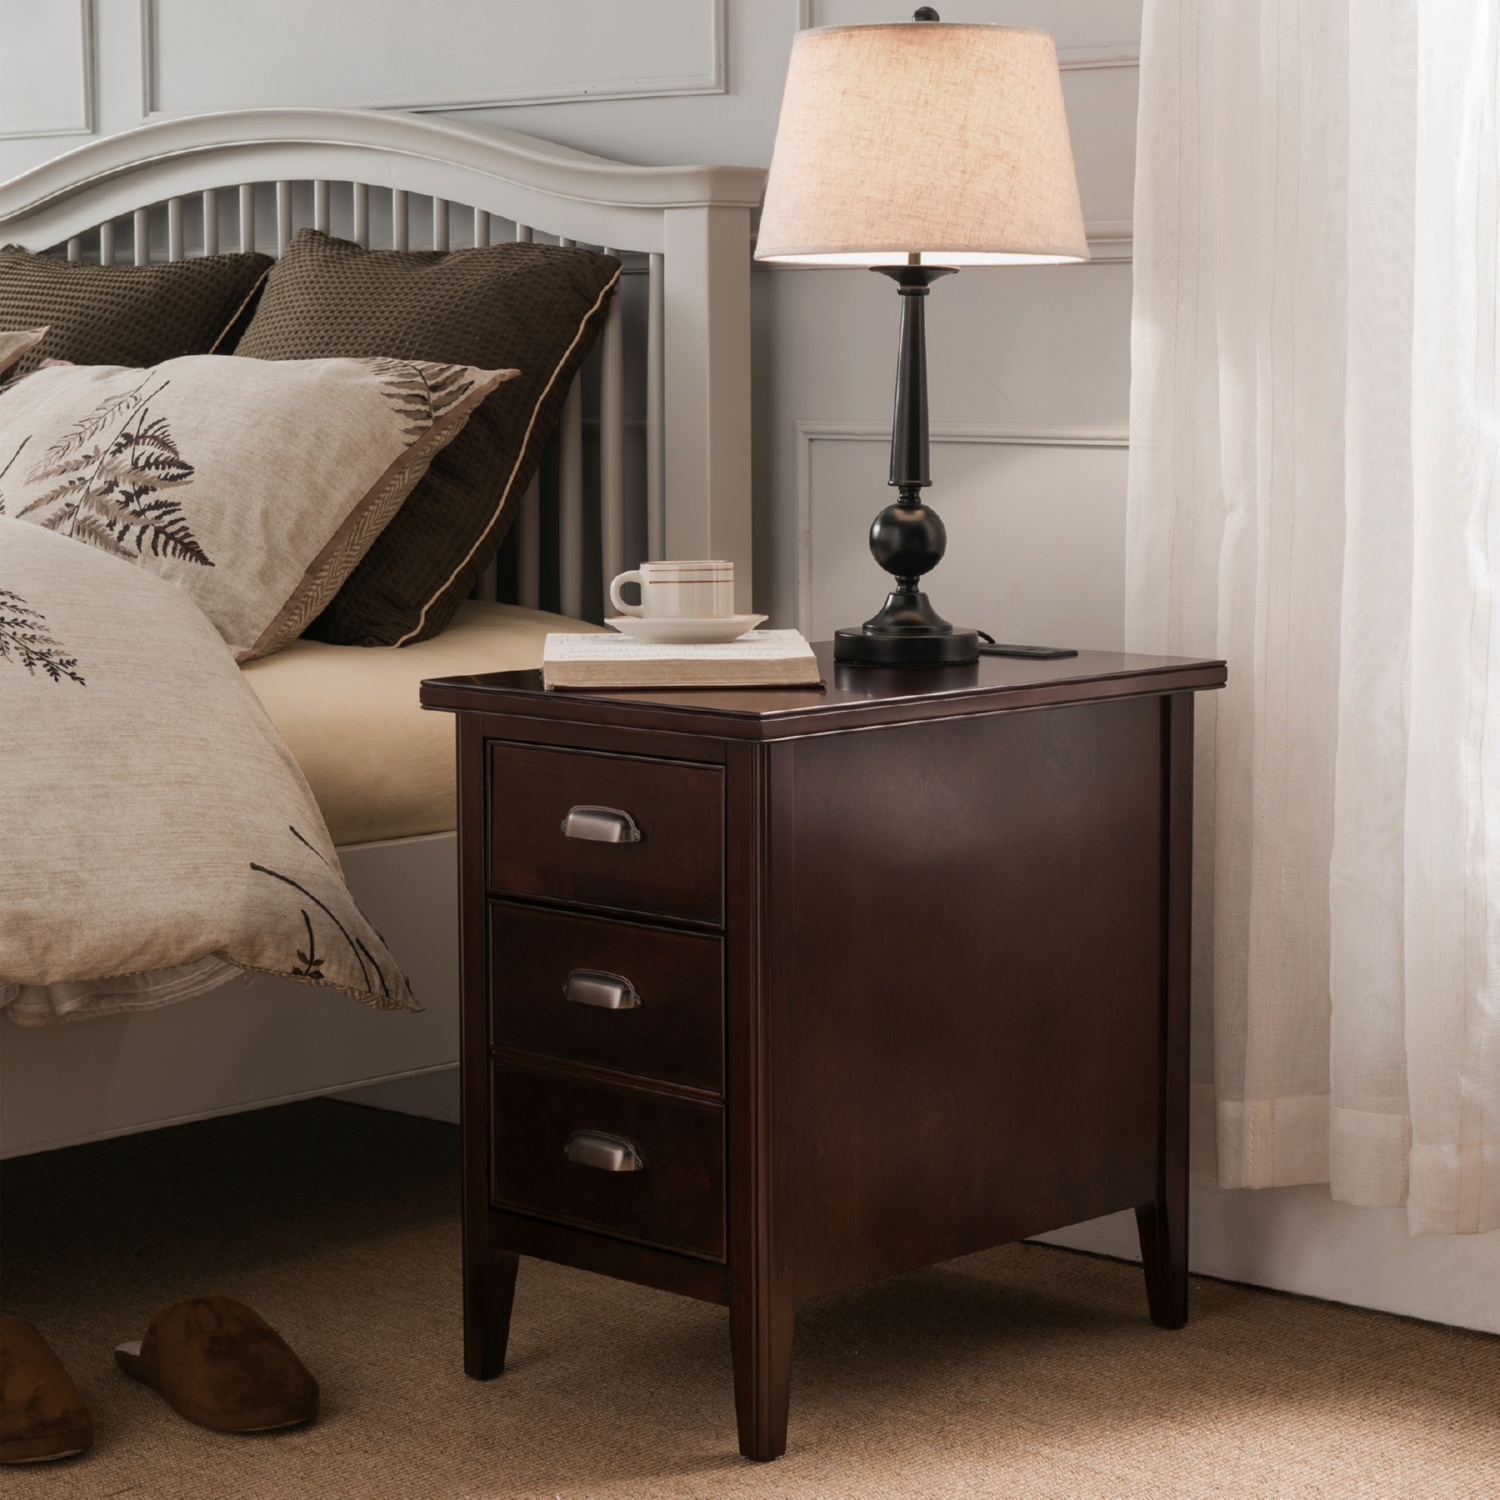 laurent cabinet end table w drawer door u0026 2 plug outlet in chocolate cherry - Leick Furniture